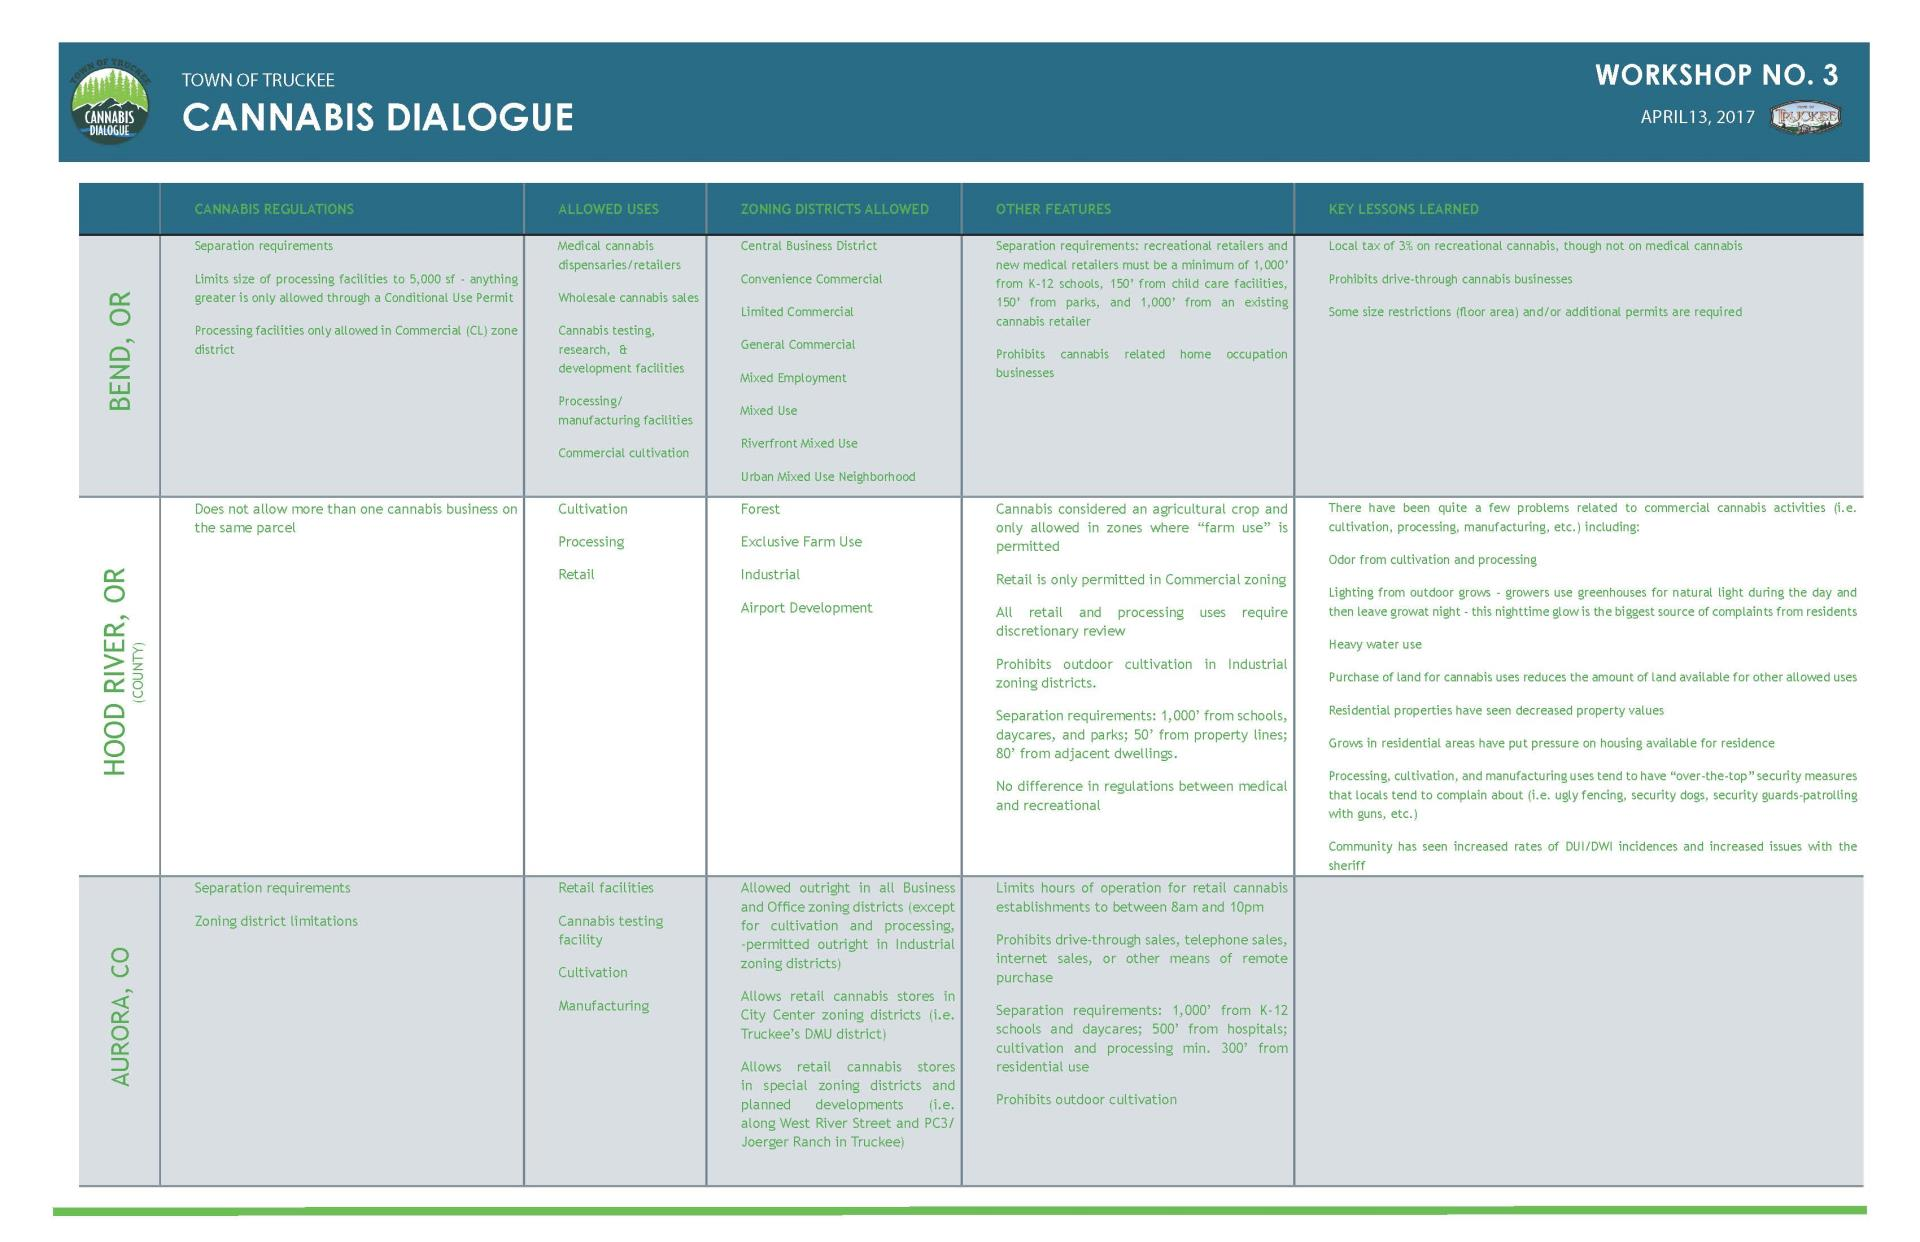 Cannabis Dialogue Workshop 3 Newsletter_Page_5